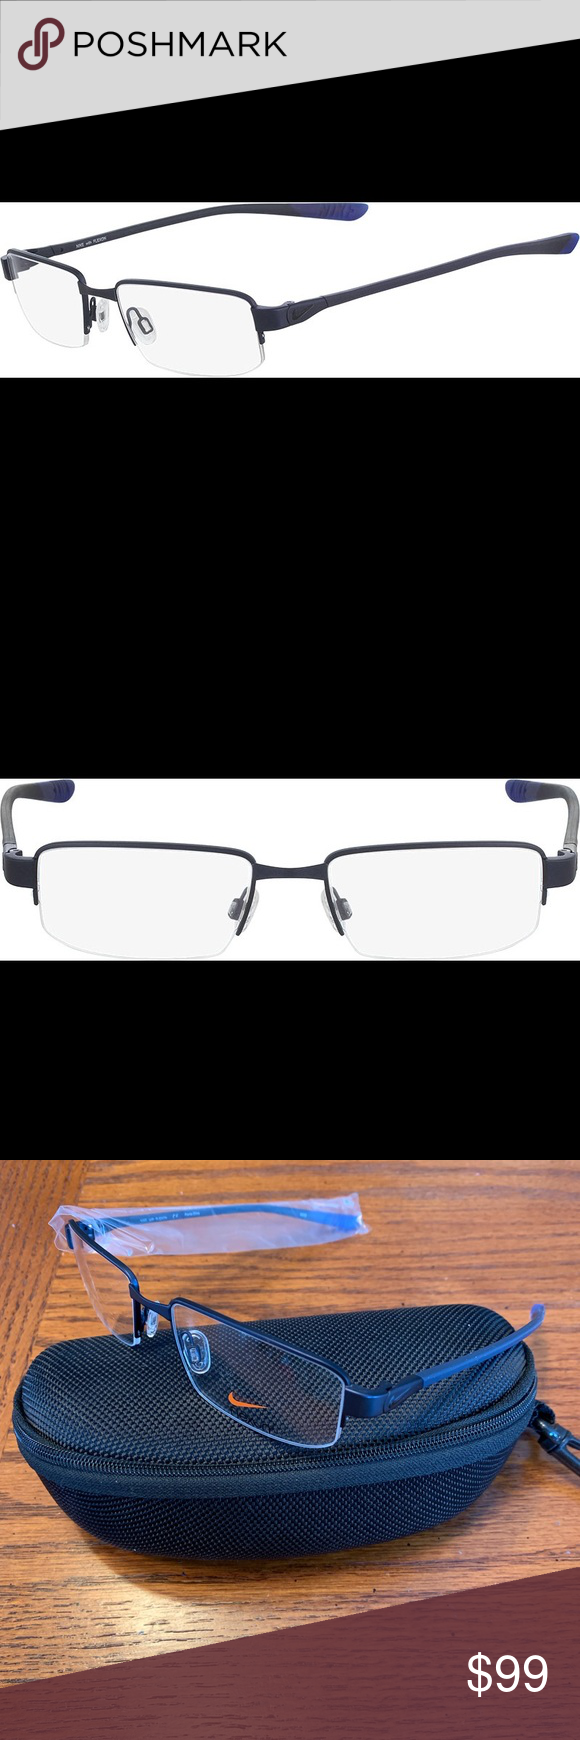 26f523f618ae Nike Eyeglass Frame 4275 New fixed price 53-18-140 Rand new Nike eyeglass  frames made with Flexon. Flexon is a flexible metal so the glasses can hold  up to ...